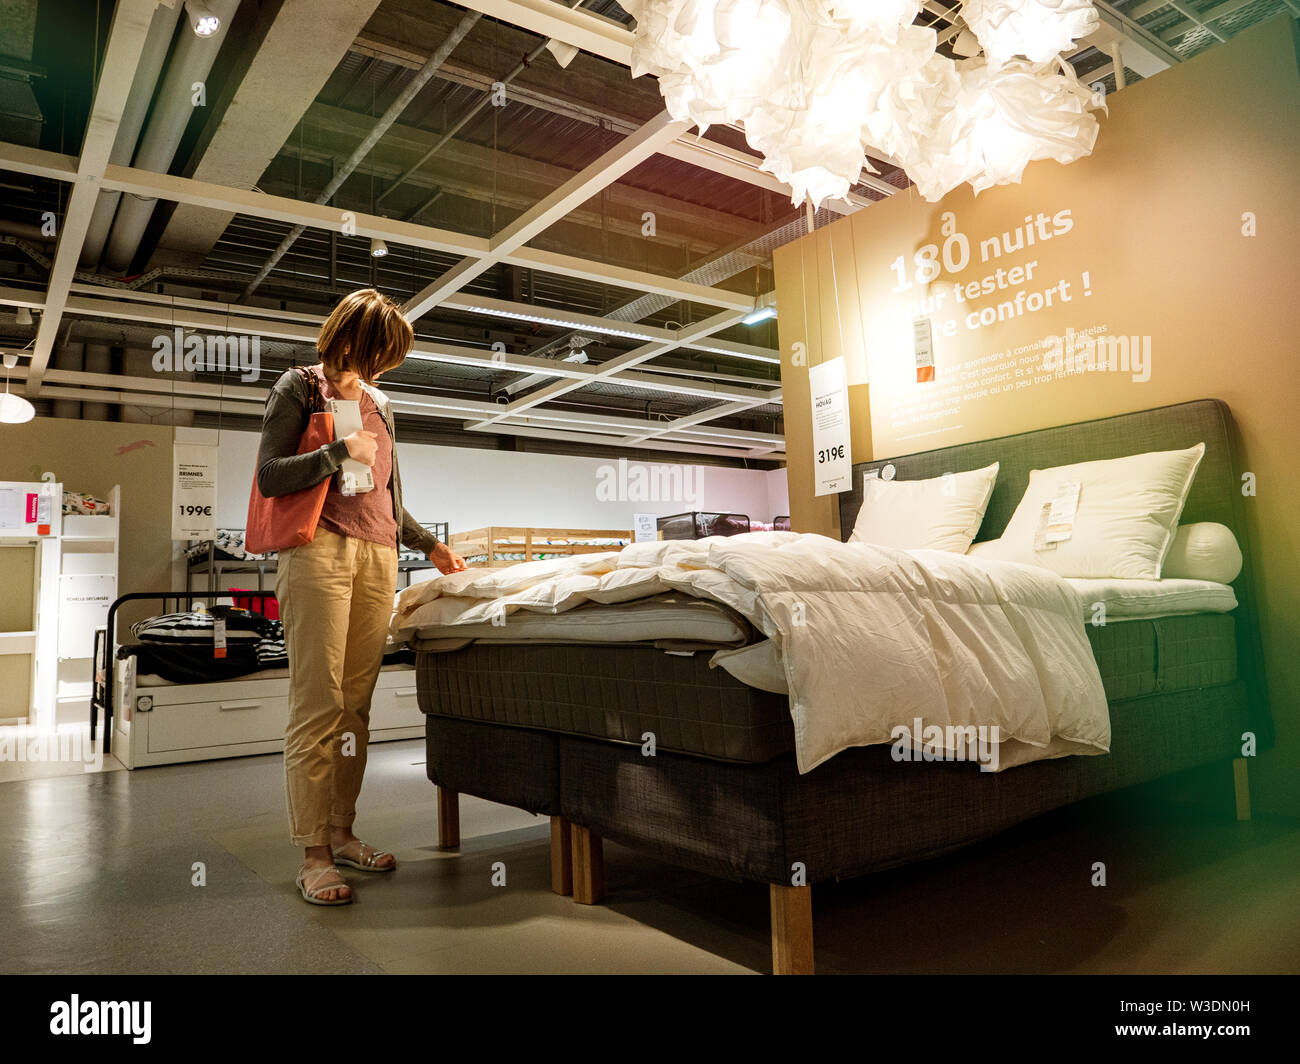 Ikea Pillow High Resolution Stock Photography And Images Alamy